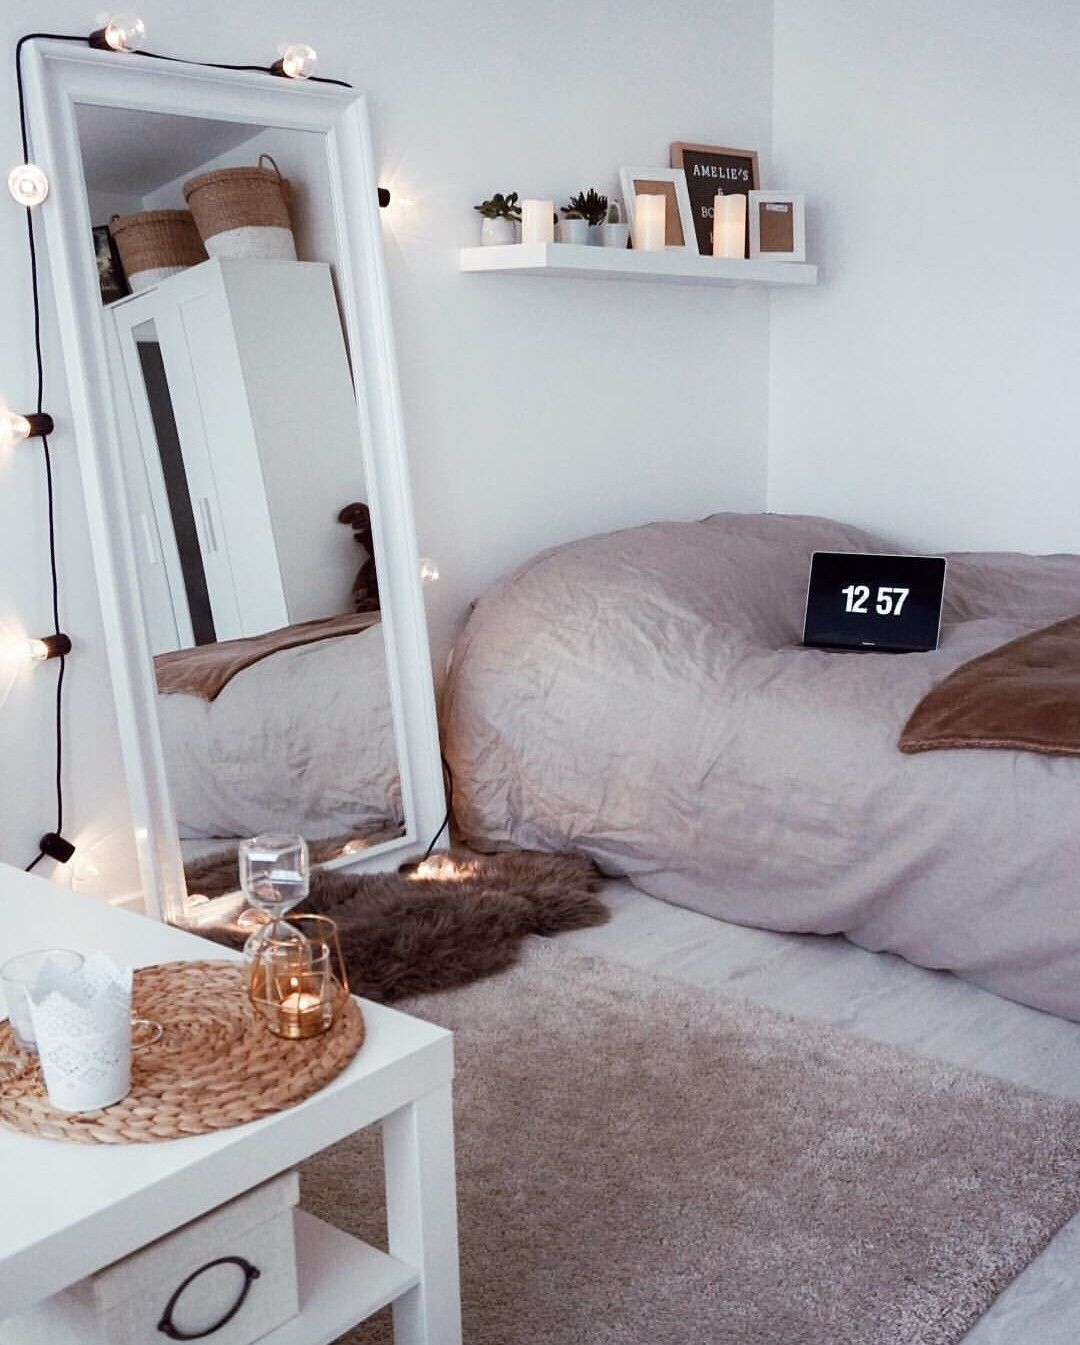 Best Pinterest Trinitie99 Dorm Room Ideas For Girls This Month